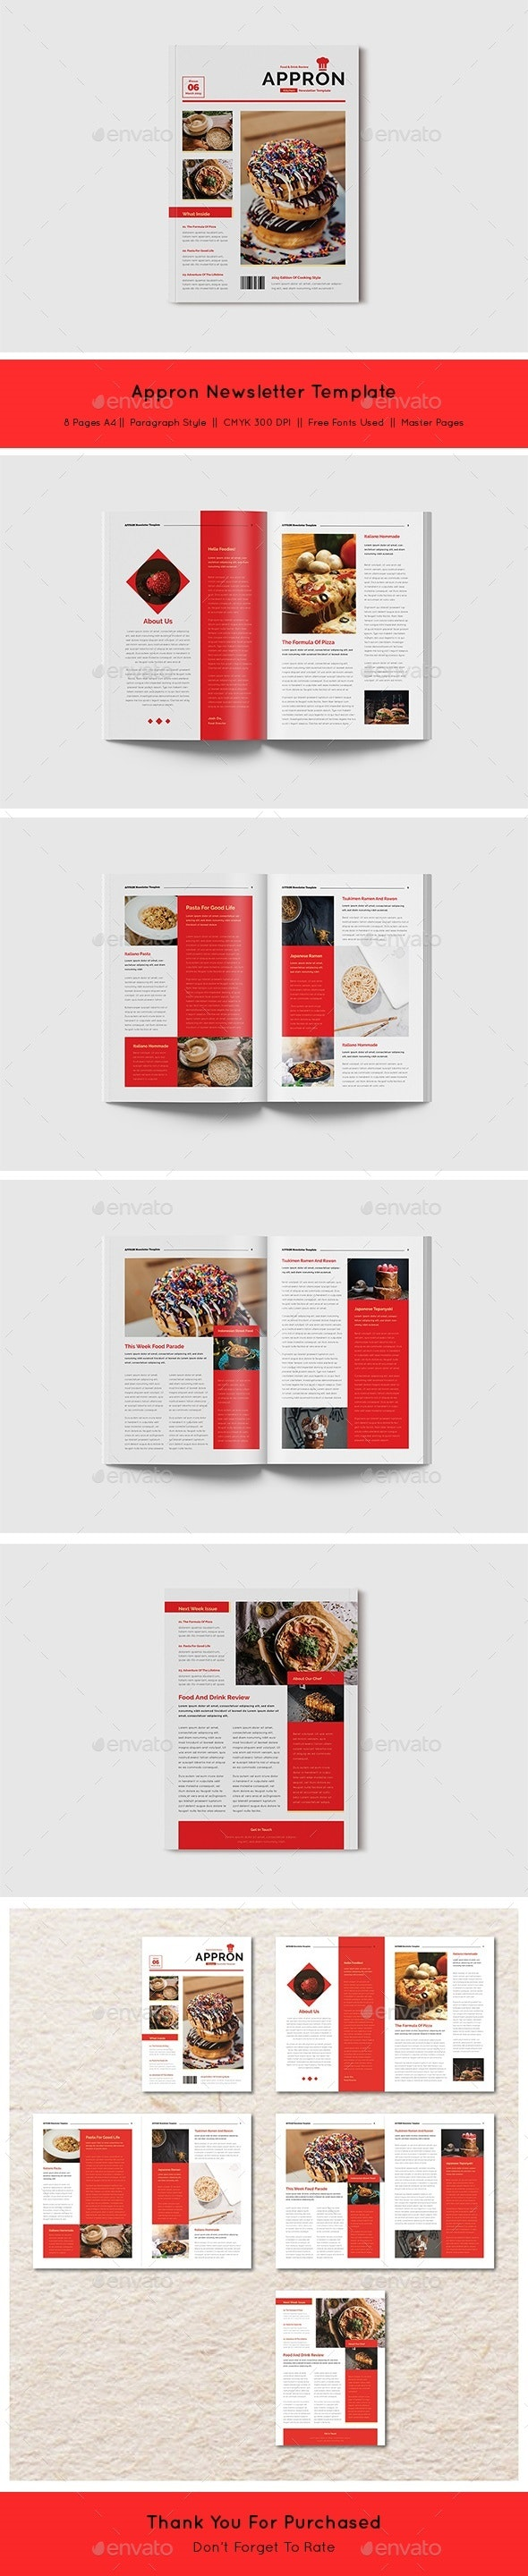 Appron Newsletter Template - Newsletters Print Templates